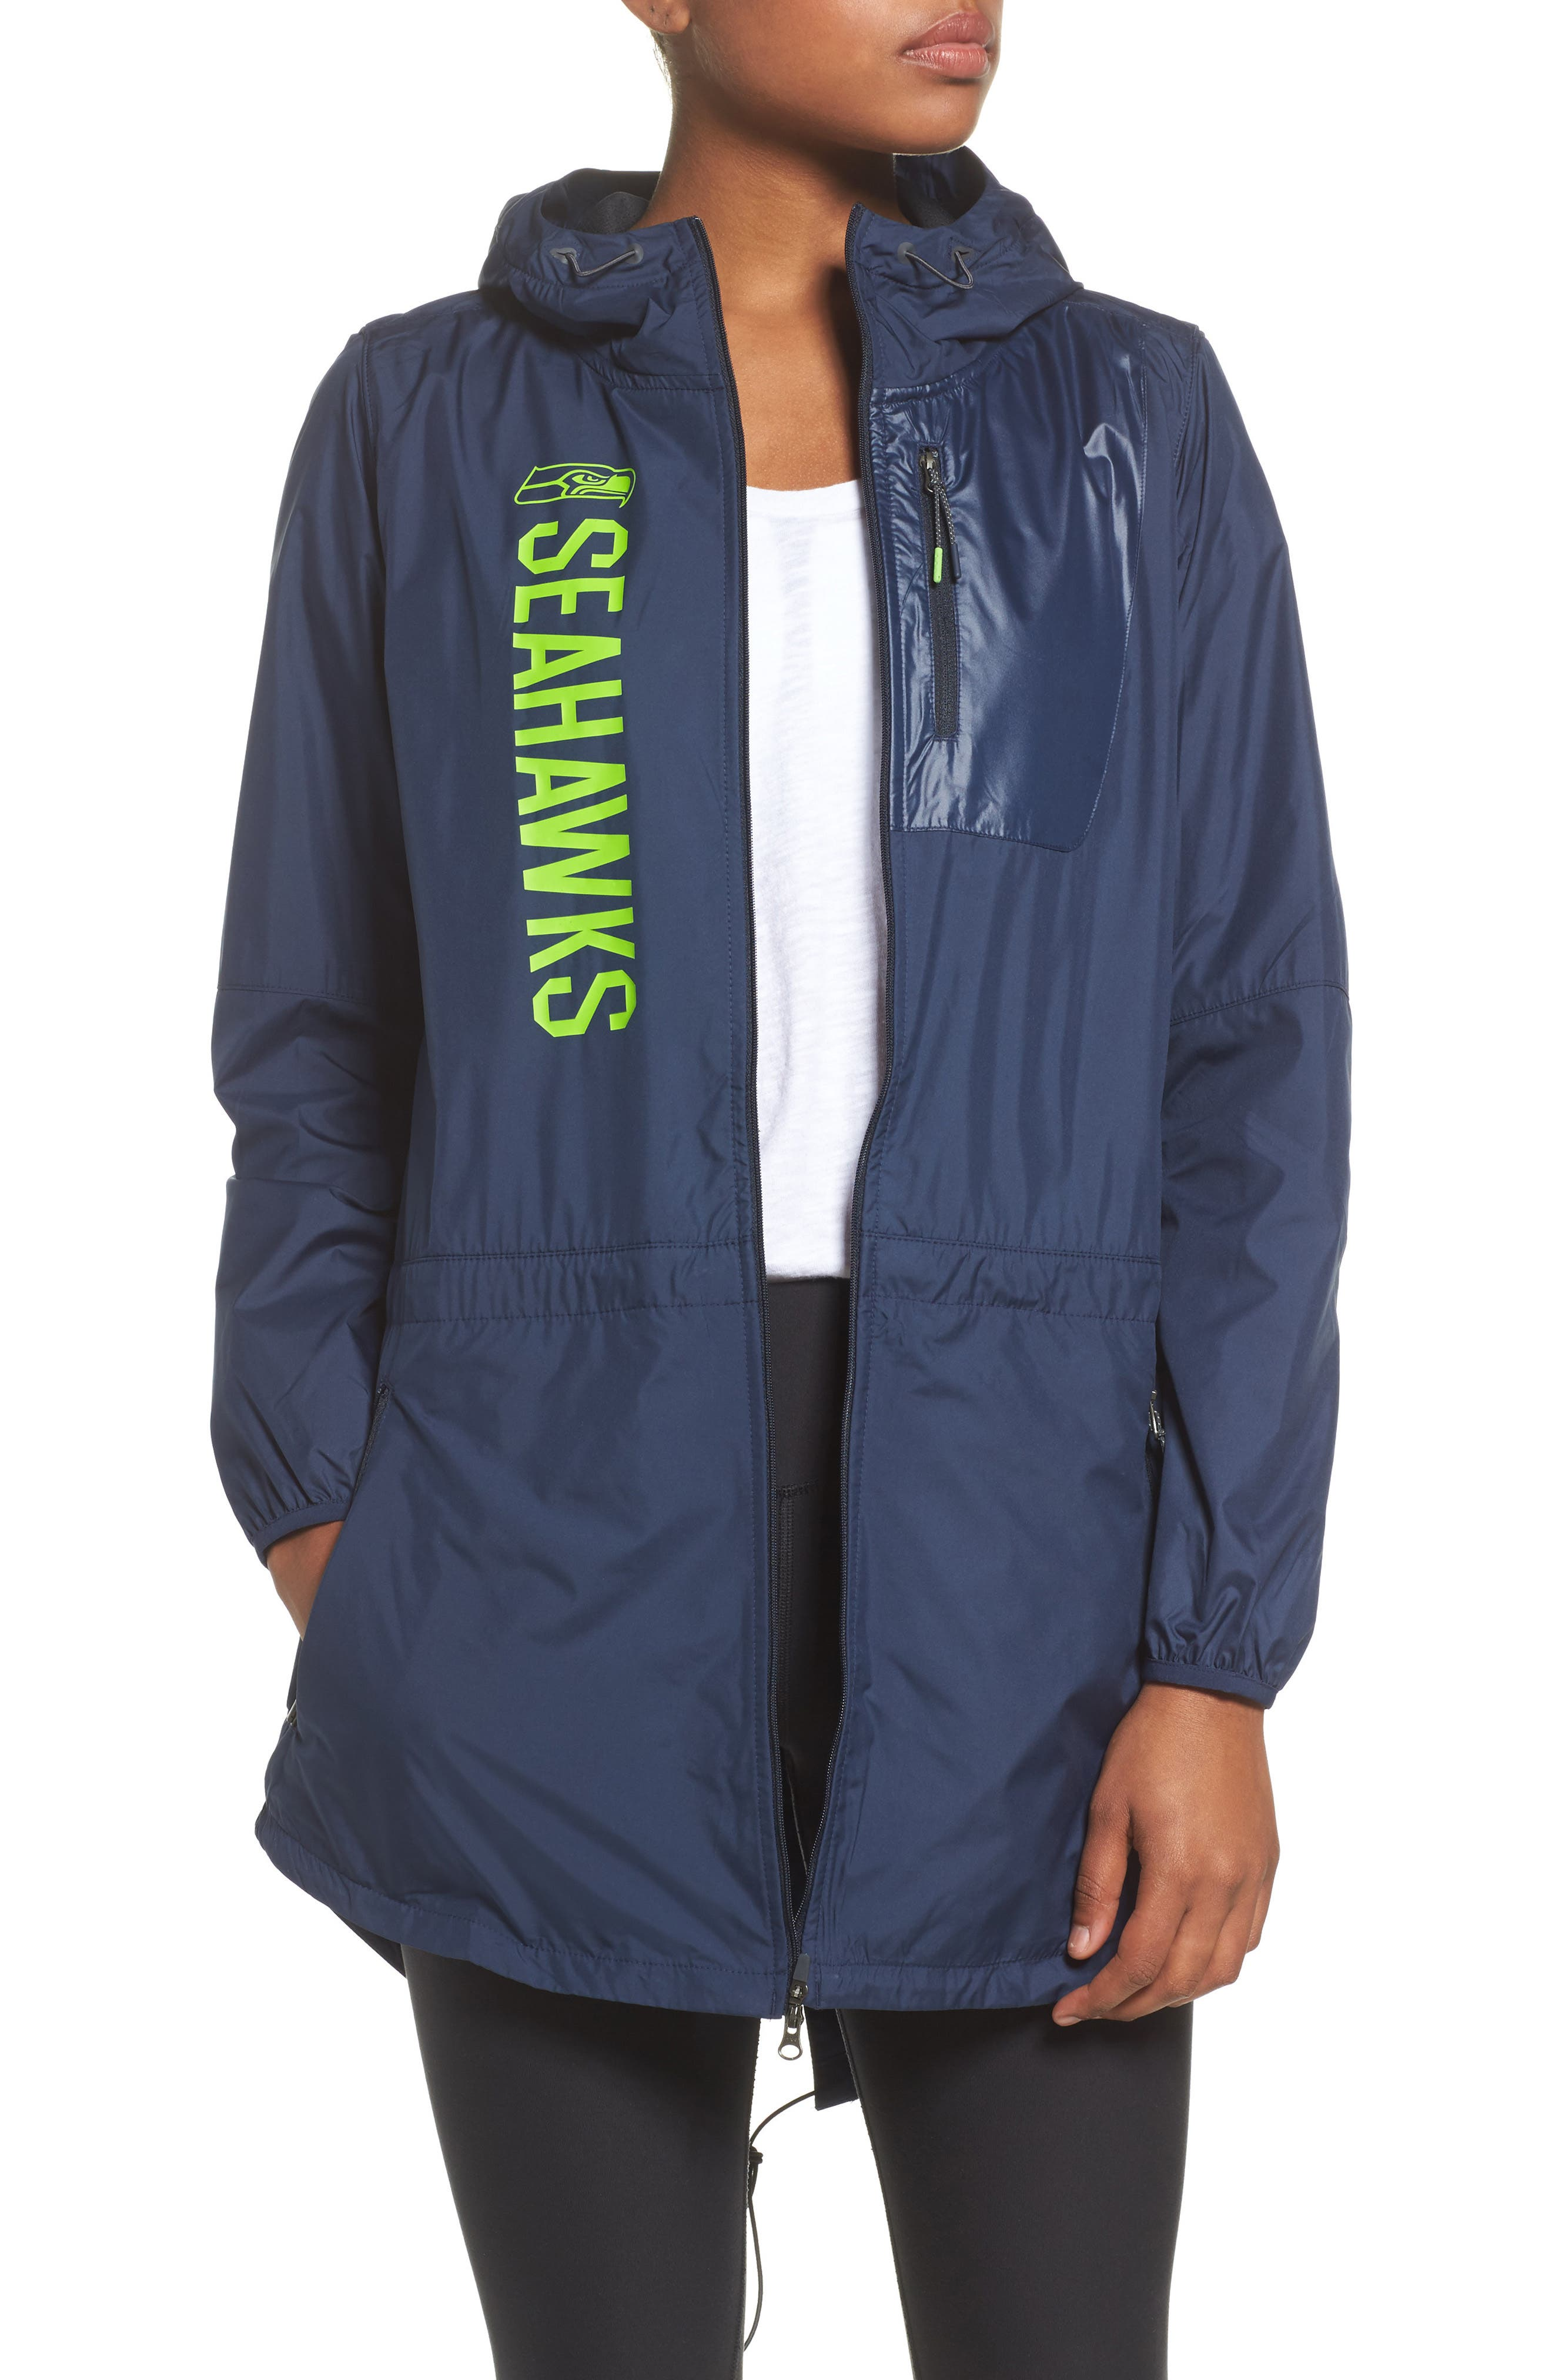 NFL Packable Water Resistant Jacket,                             Main thumbnail 1, color,                             College Navy/ Seahawks